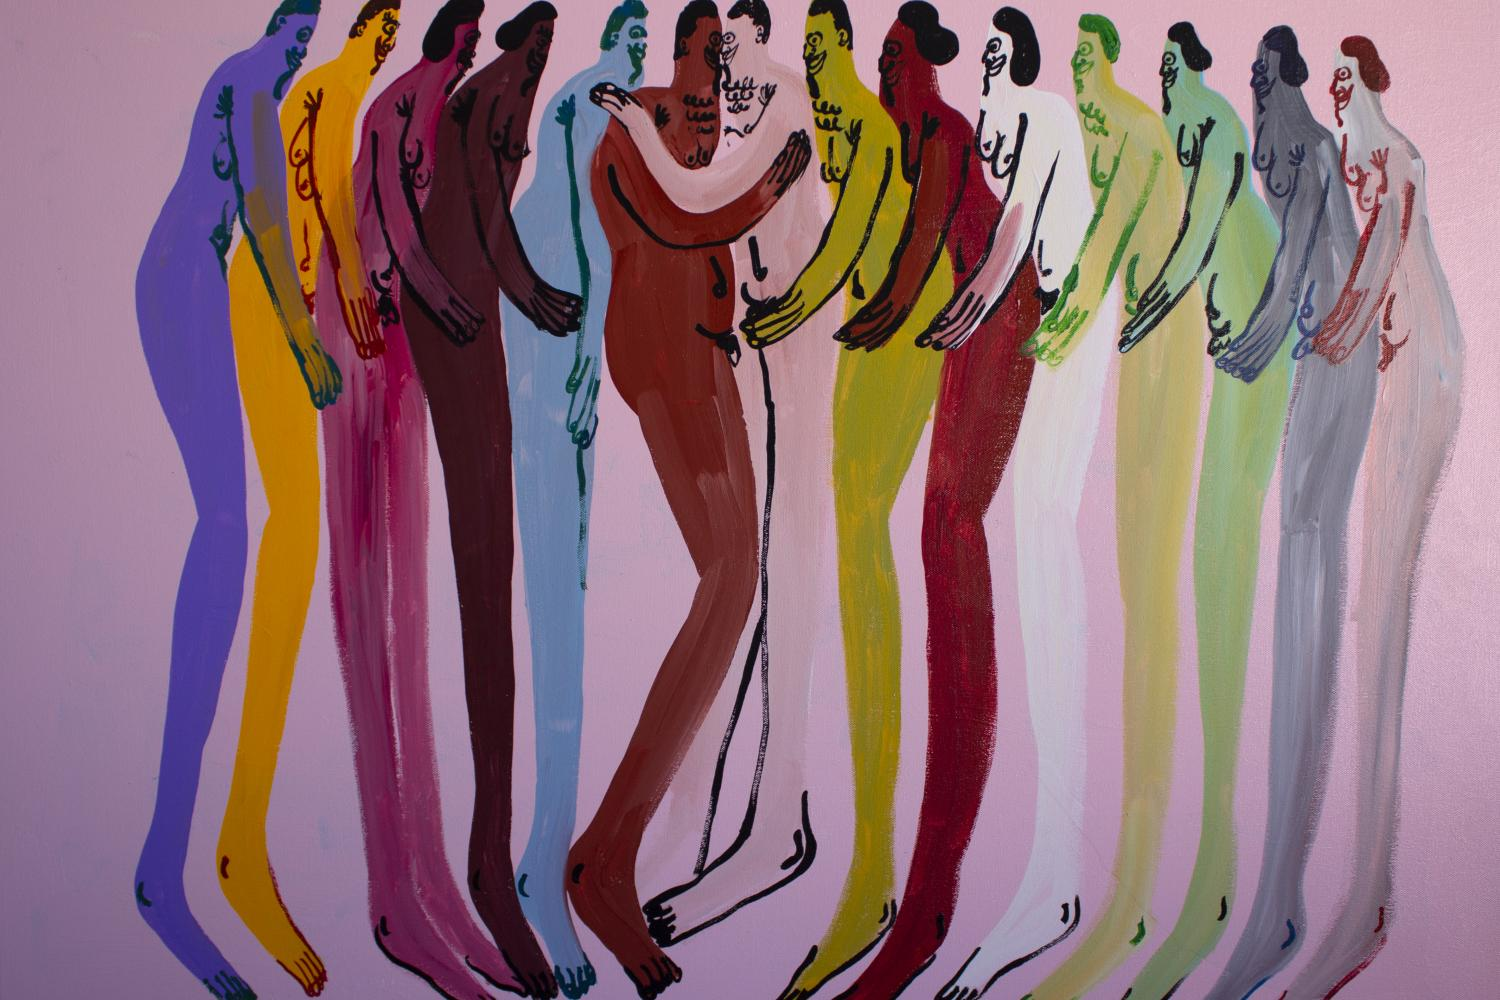 Figural painting of over a dozen naked bodies in different colors, hugging each other, by jeffrey cheung